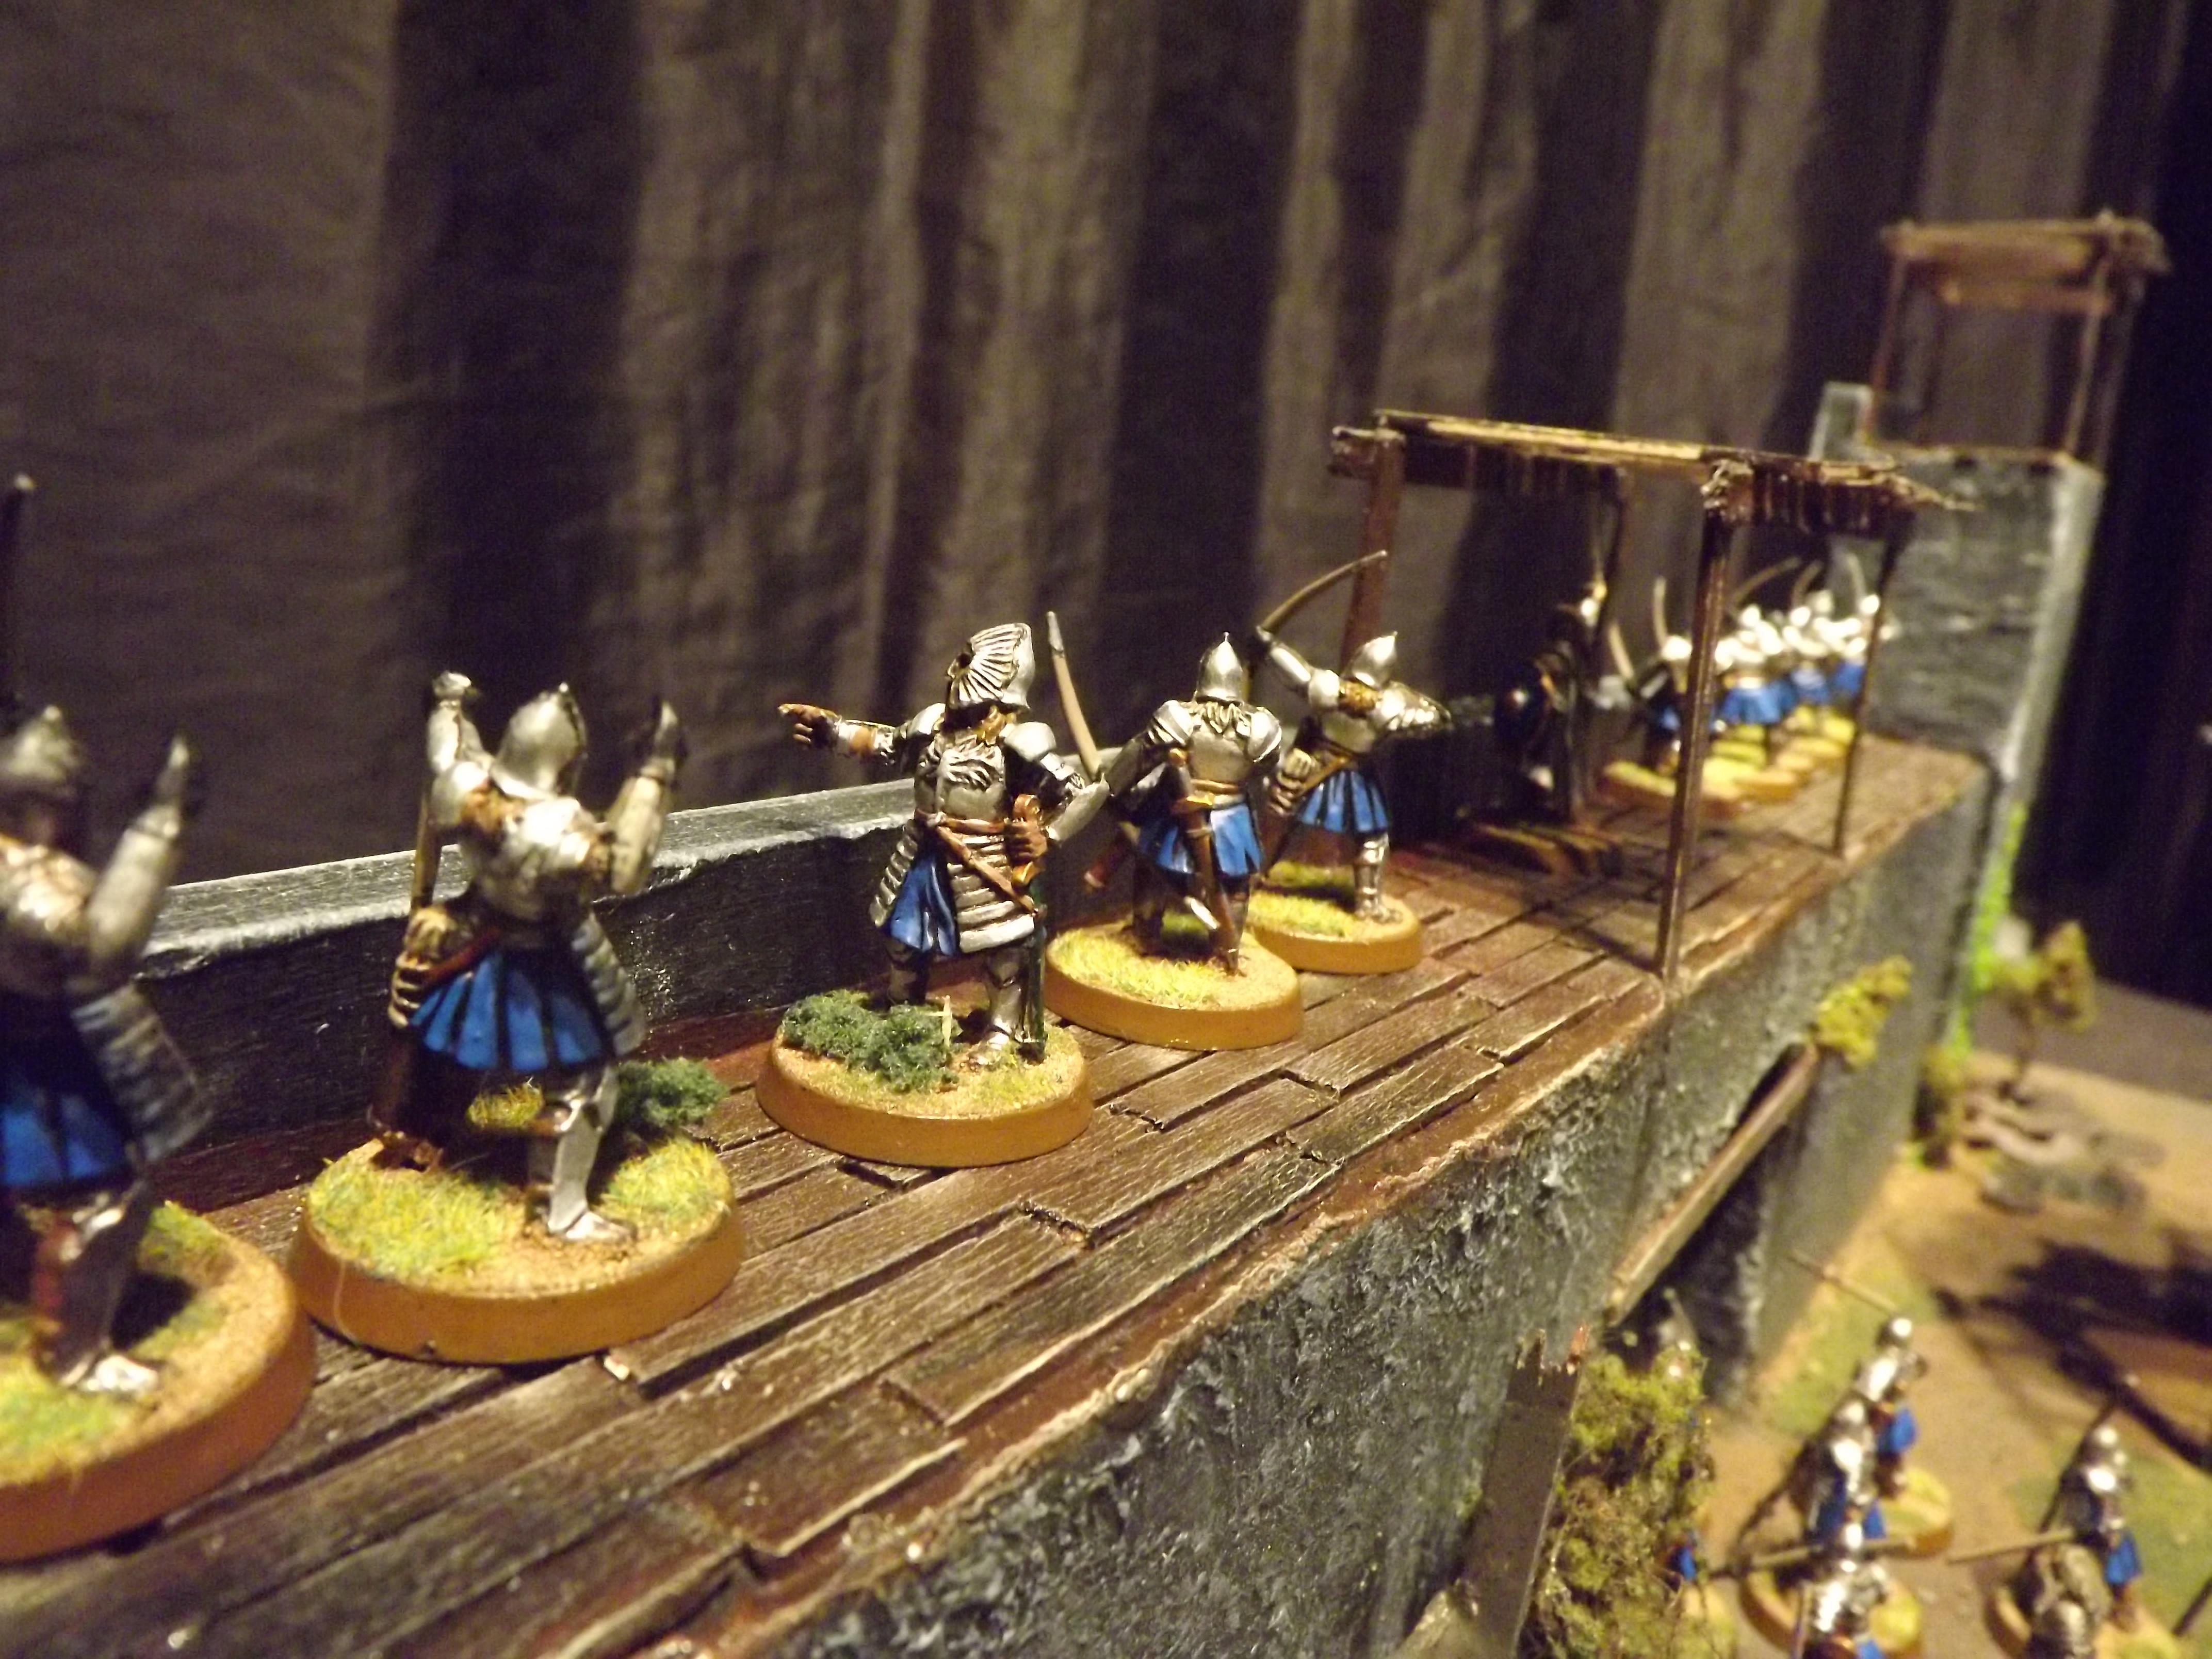 Battle, Castle, Fort, Gondor, Lord Of The Rings, Orcs, Orks, Playing Board, Playing Table, Playing Table Minas Tirith, Seige